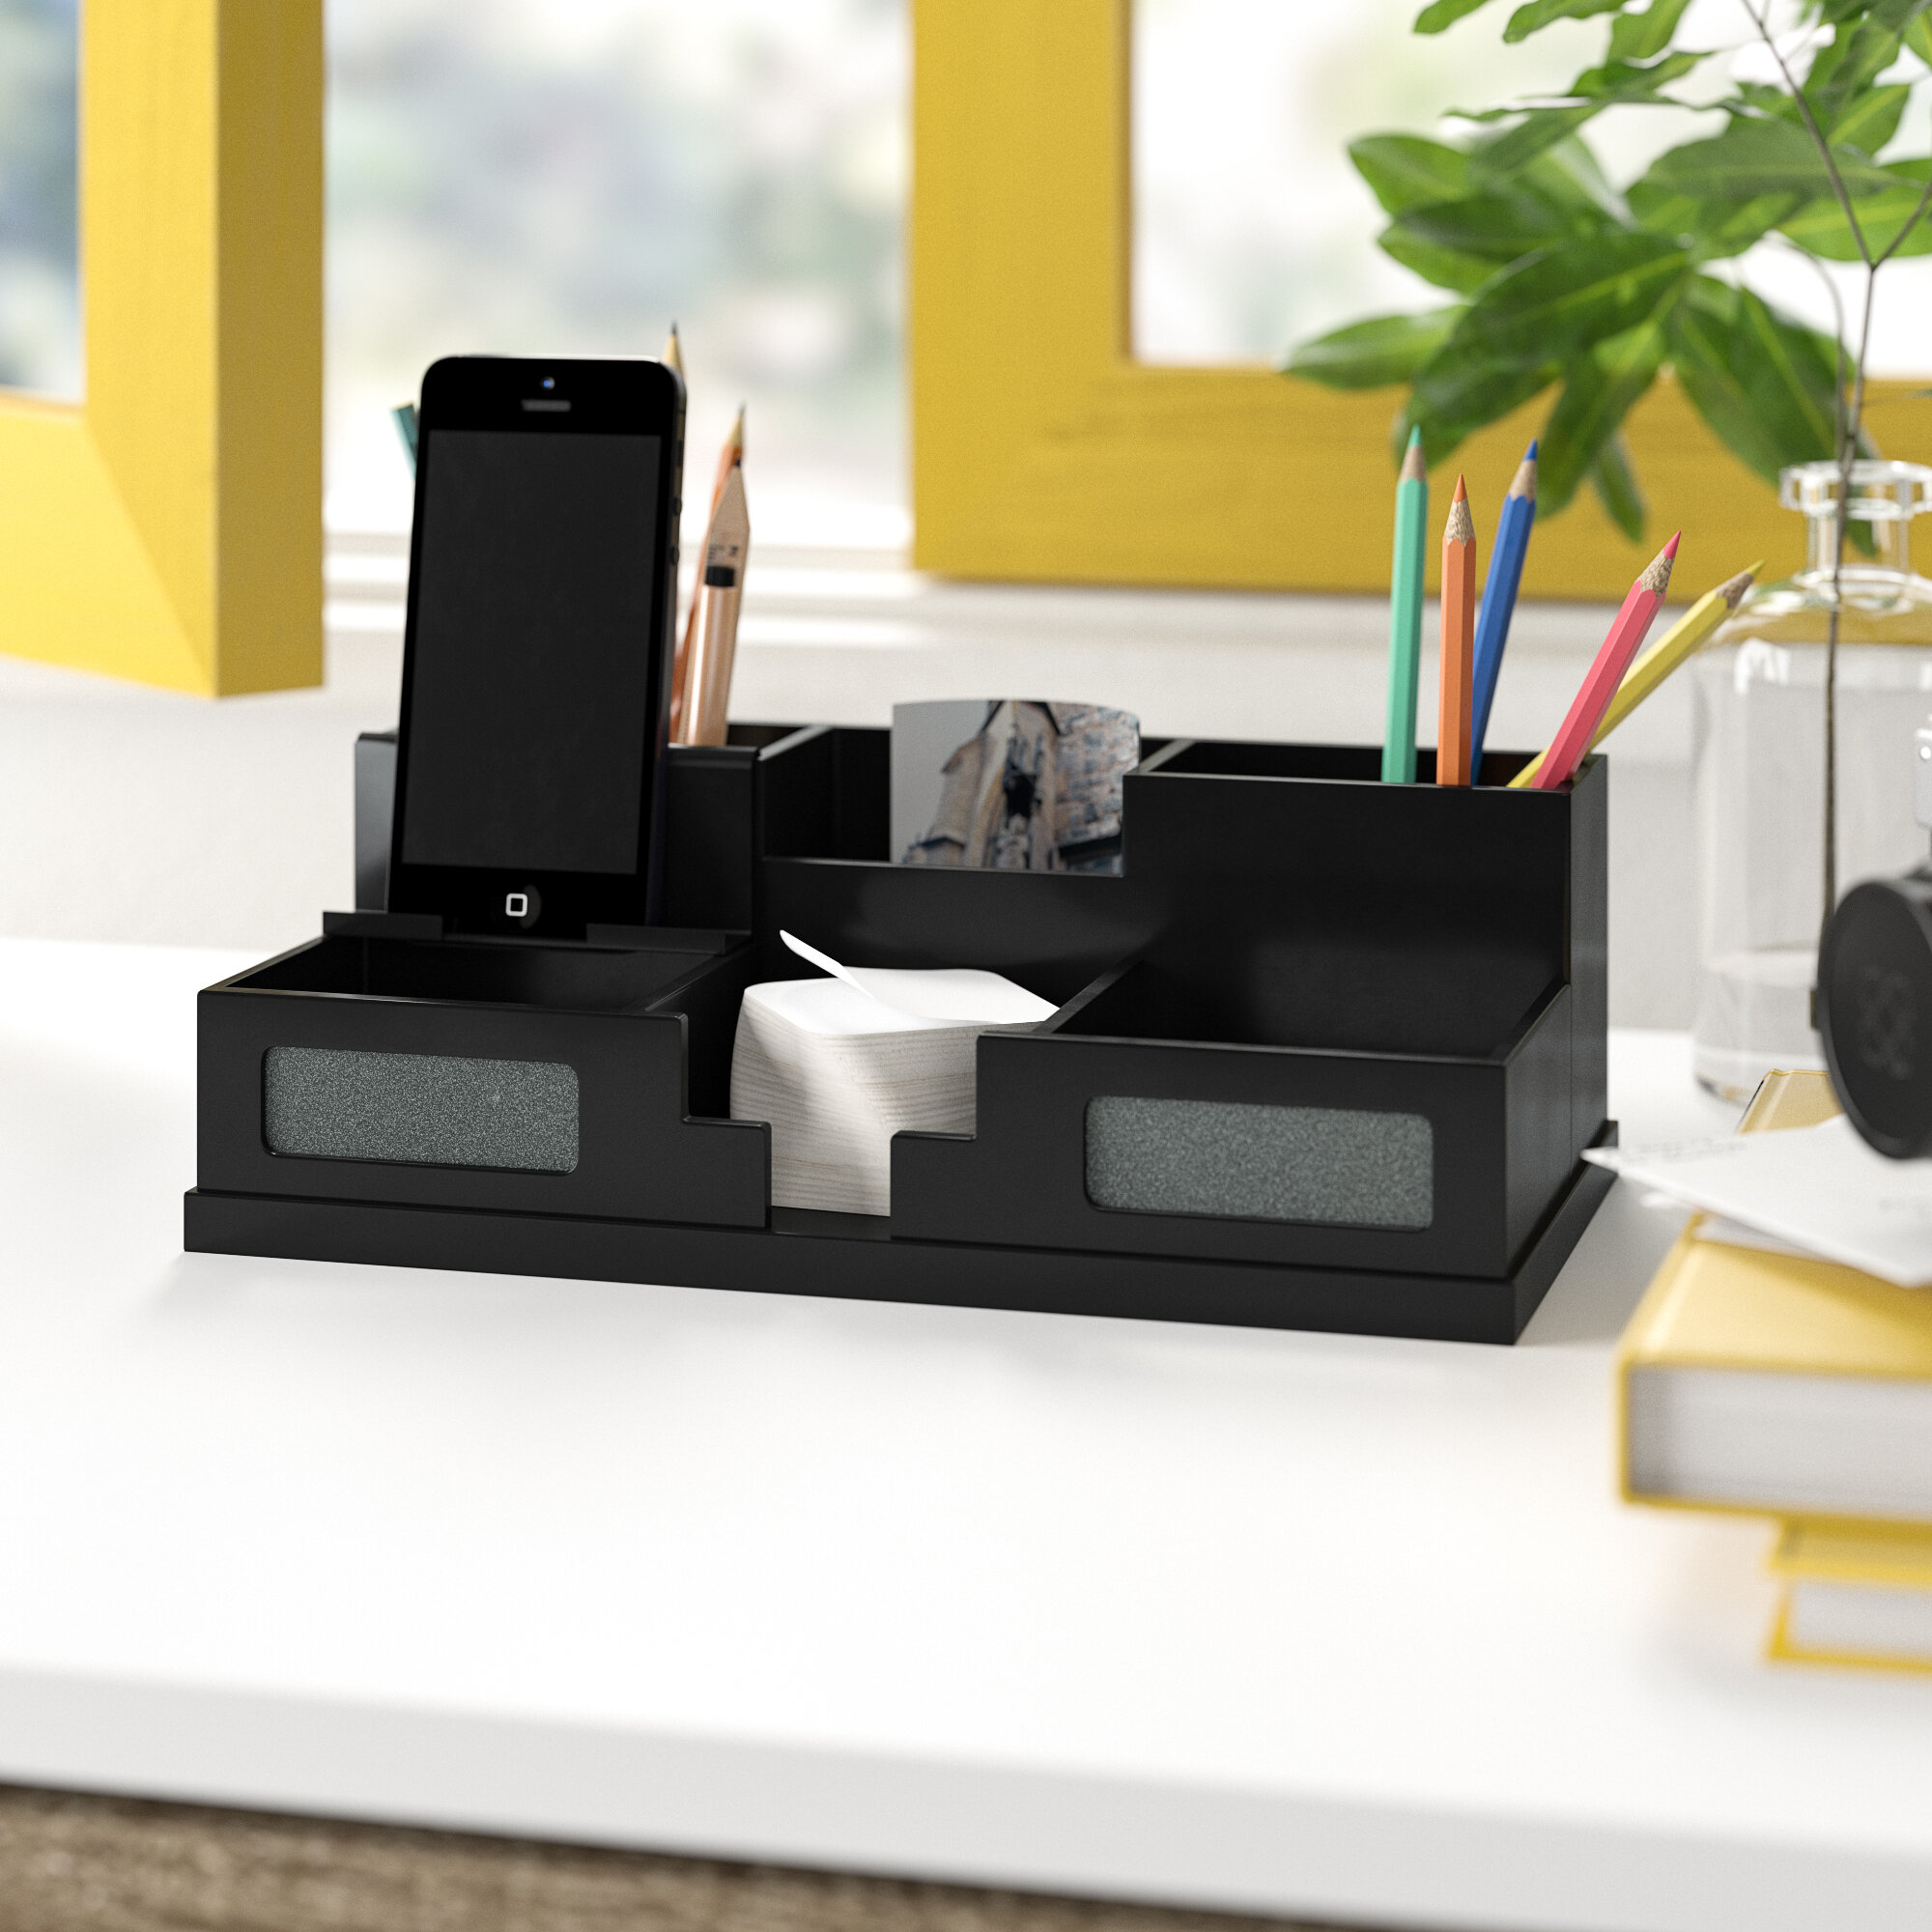 2cad016b8c04 Camile Desk Organizer with Smart Phone Holder